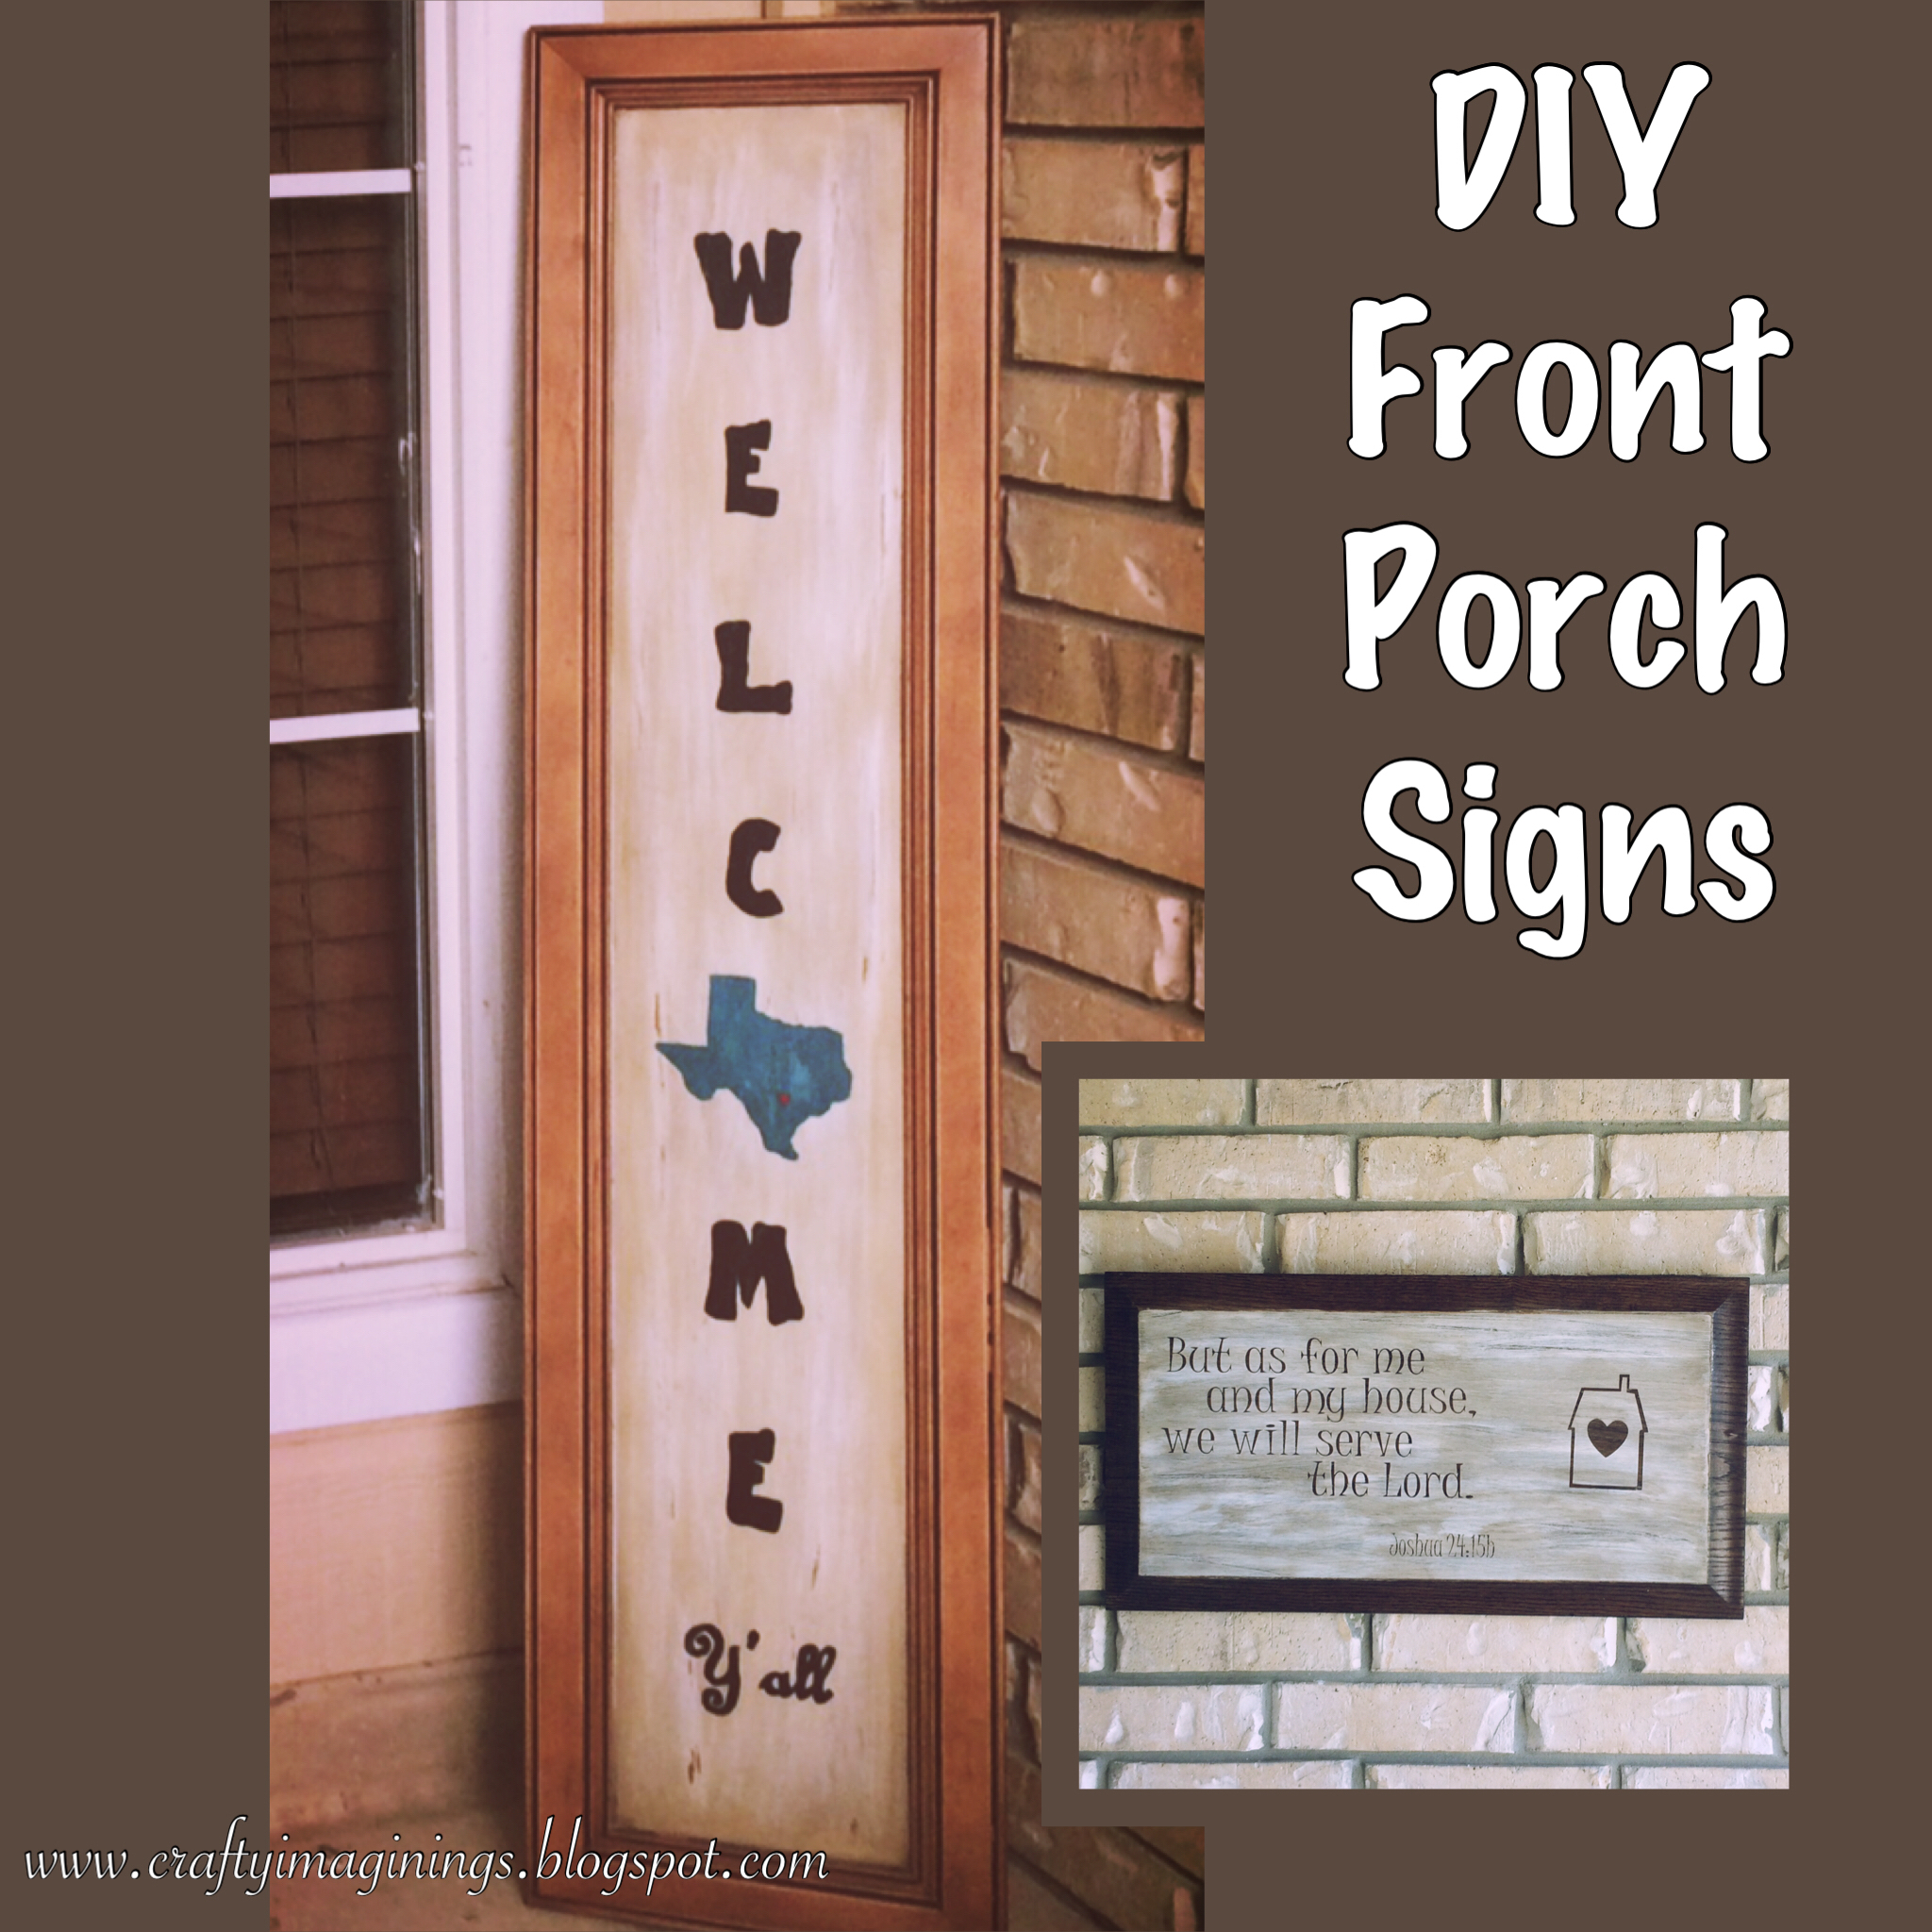 Crafty Imaginings Silly Things Diy Front Porch Signs Using